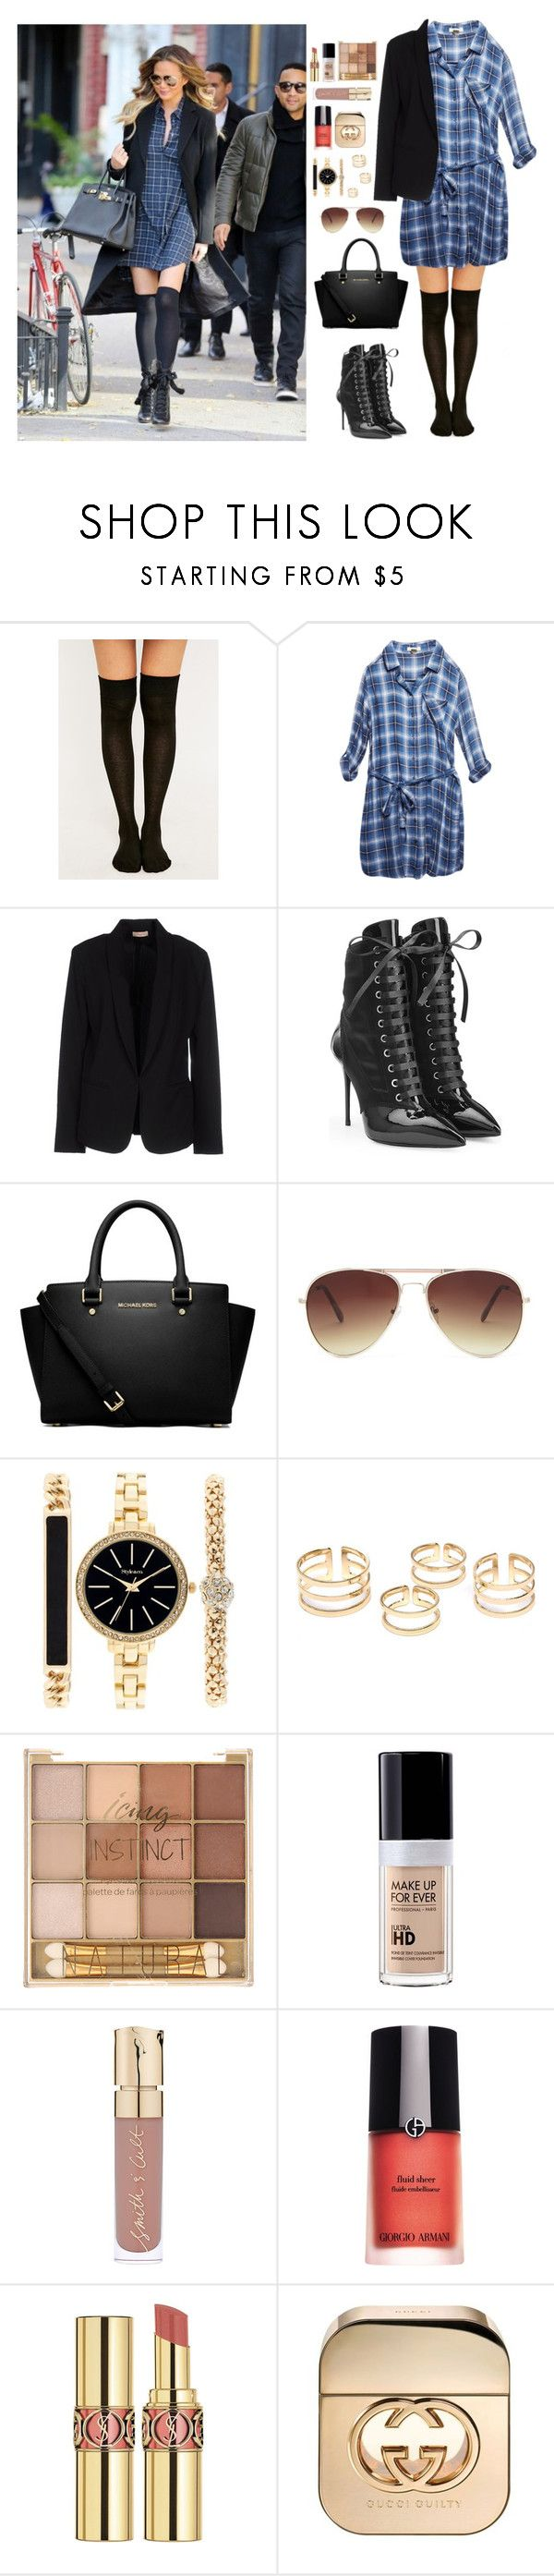 """""""Day 157 (Inspired by Chrissy Teagan)"""" by msmaharaja ❤ liked on Polyvore featuring Wet Seal, Maesta, Giuseppe Zanotti, MICHAEL Michael Kors, Forever 21, Style & Co., MAKE UP FOR EVER, Smith & Cult, Giorgio Armani and Yves Saint Laurent"""